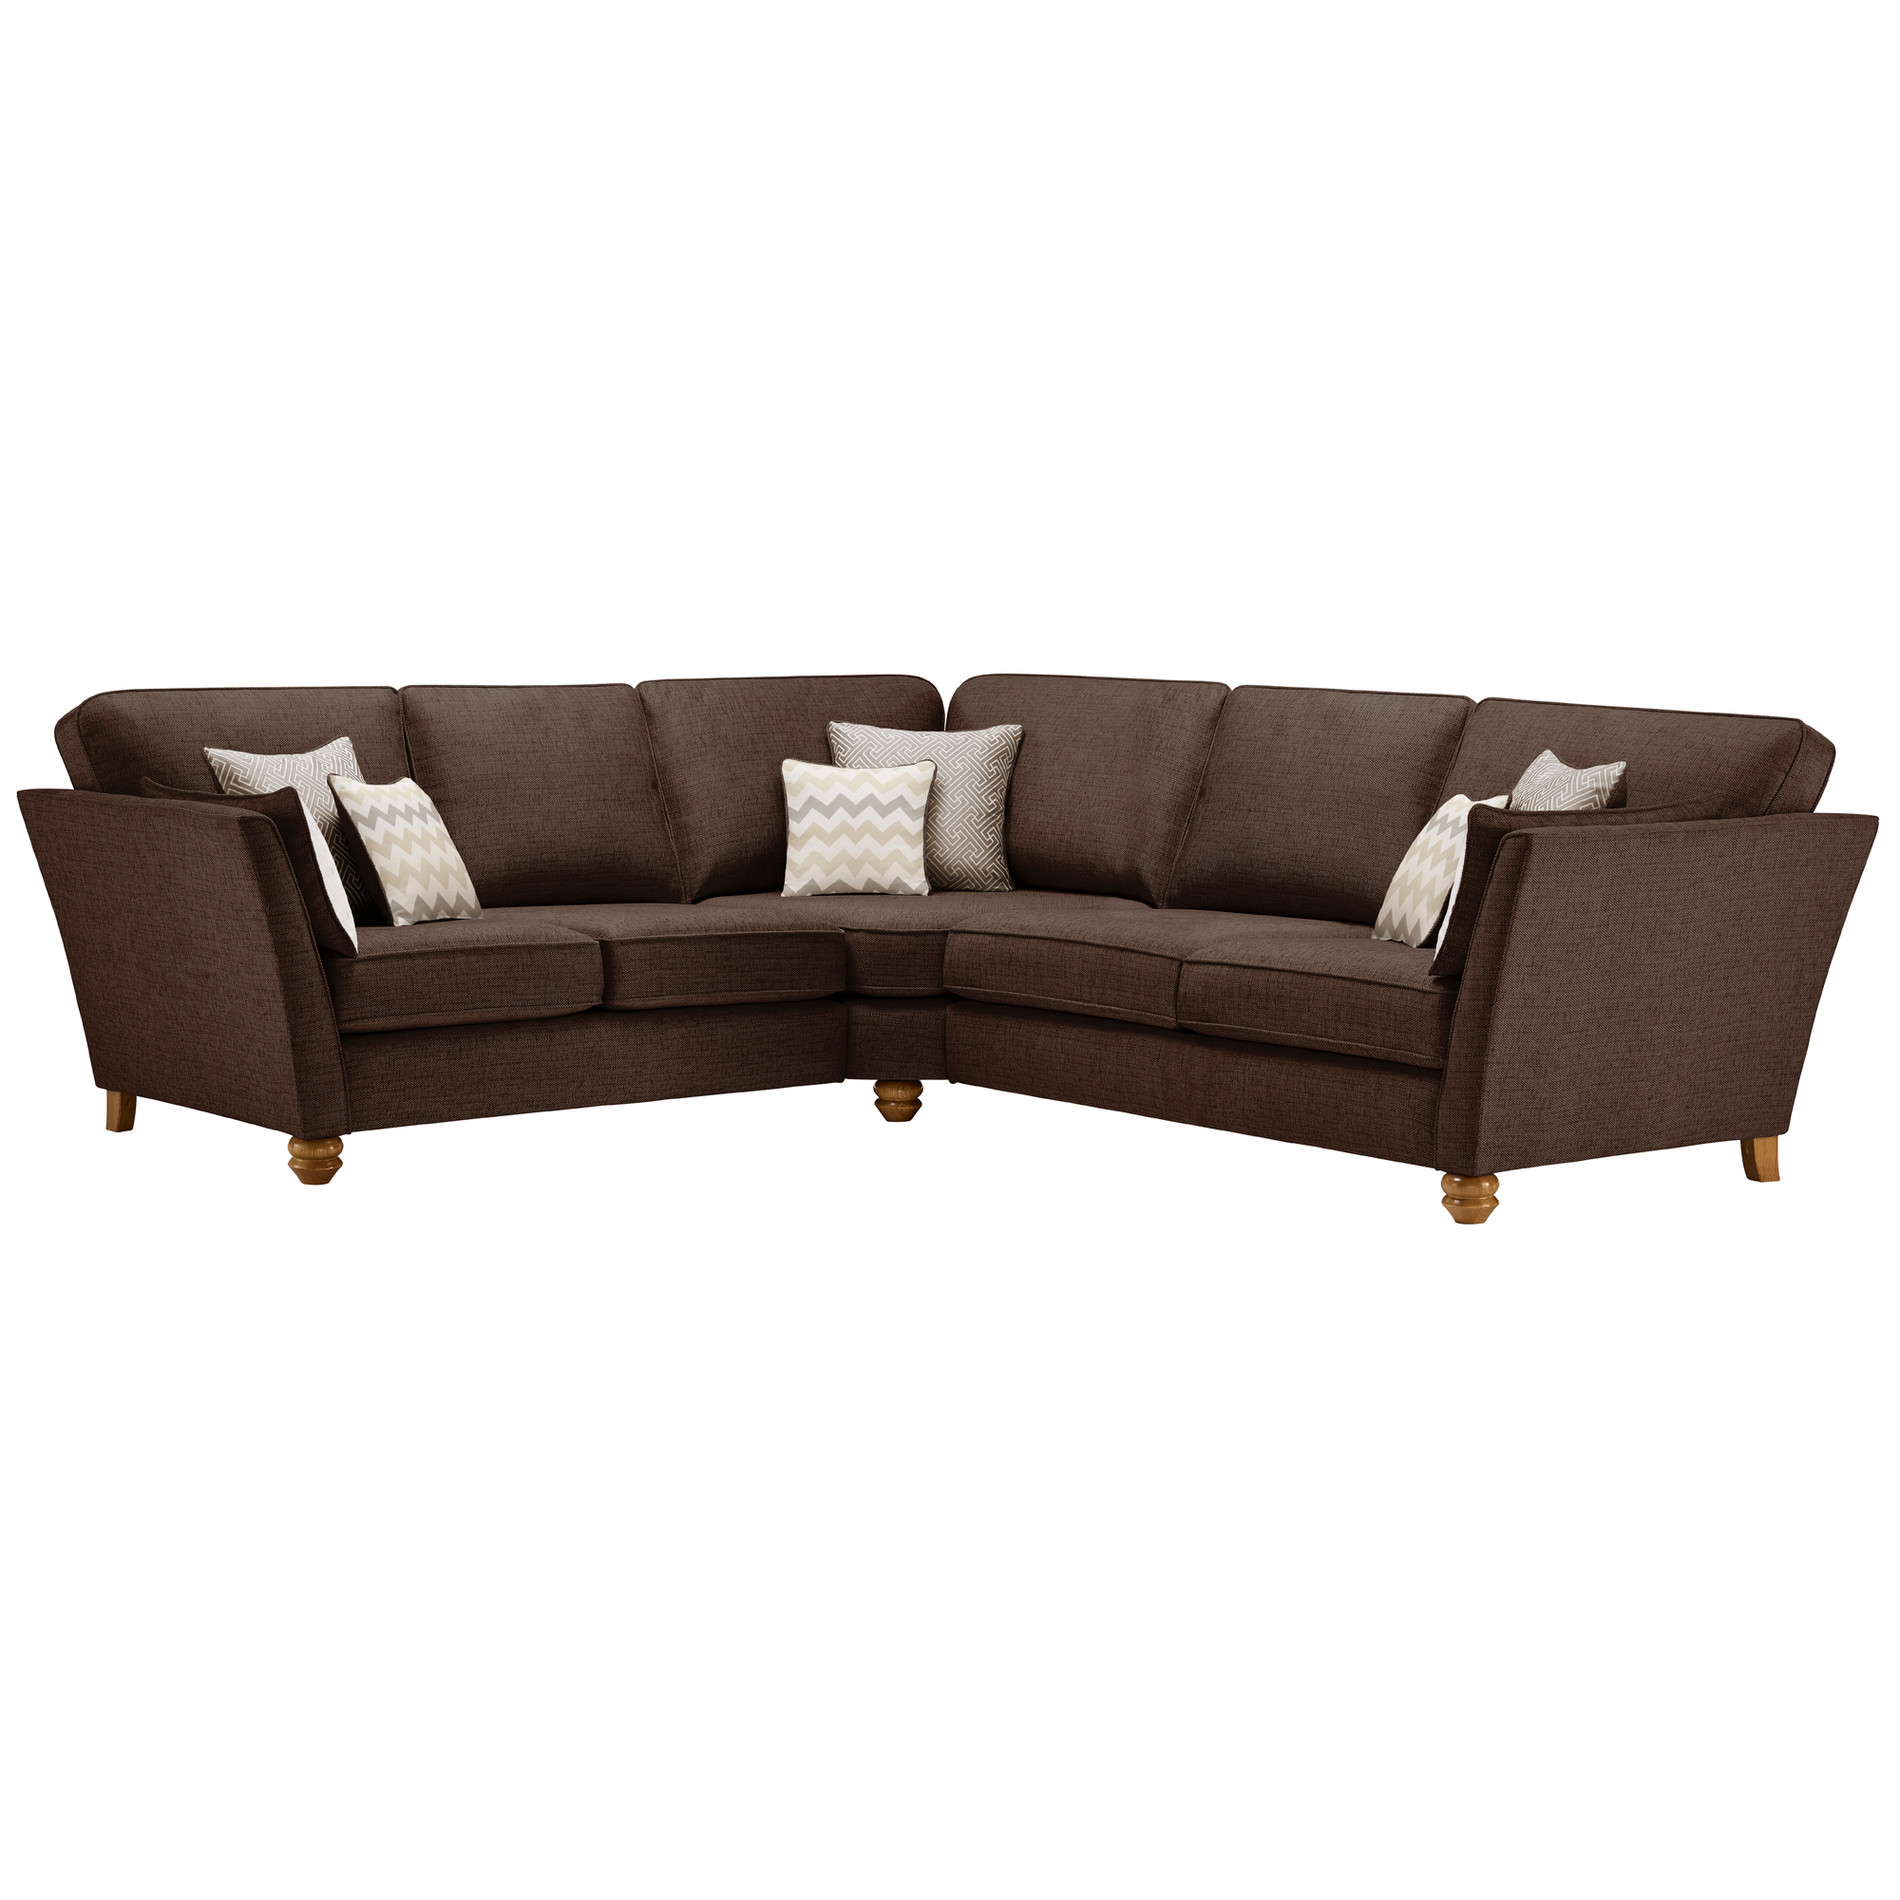 gainsborough large corner sofa in brown beige scatters. Black Bedroom Furniture Sets. Home Design Ideas